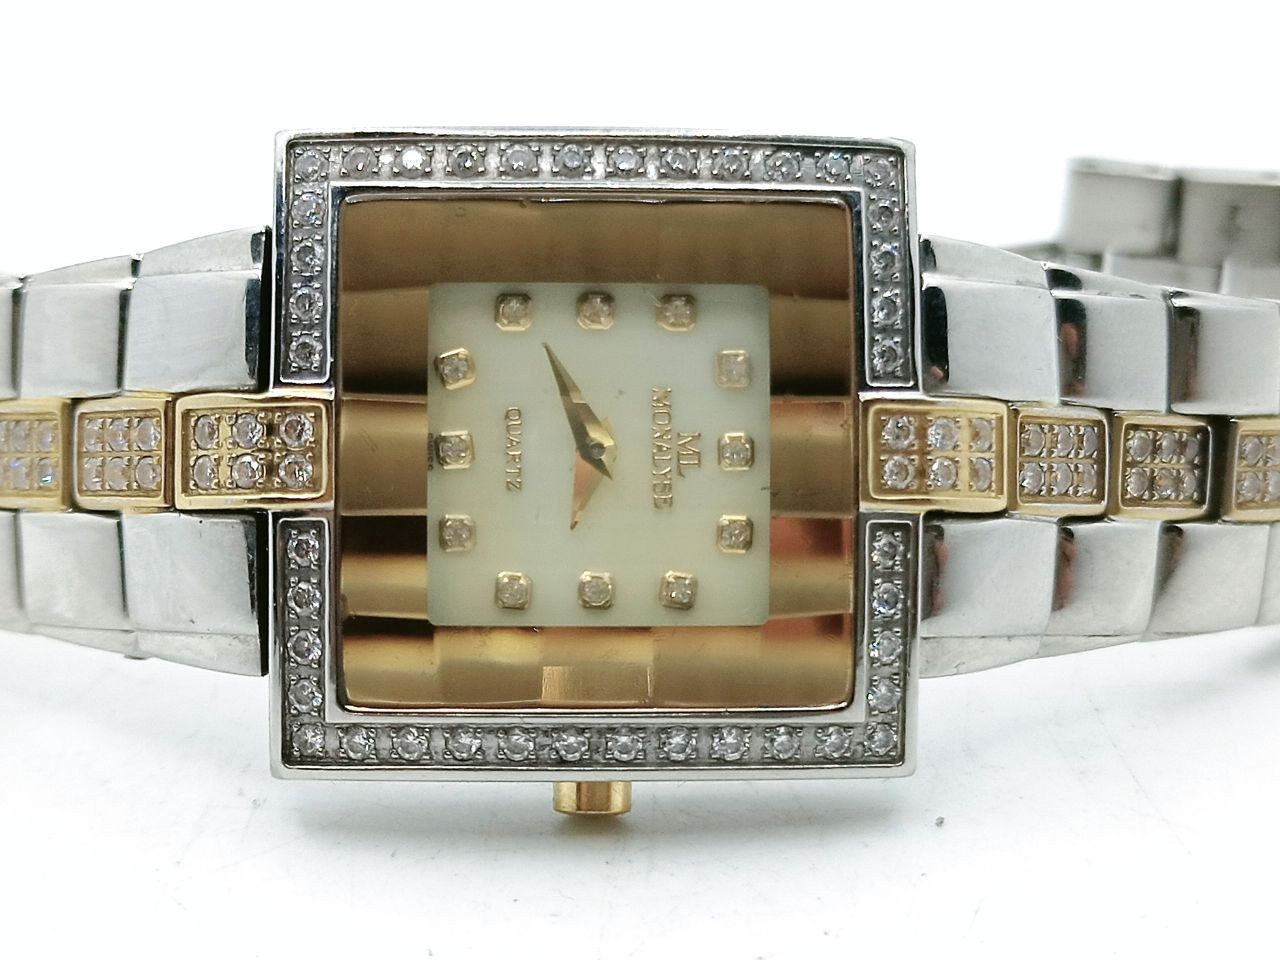 MONALYSE 22K gold plated watch